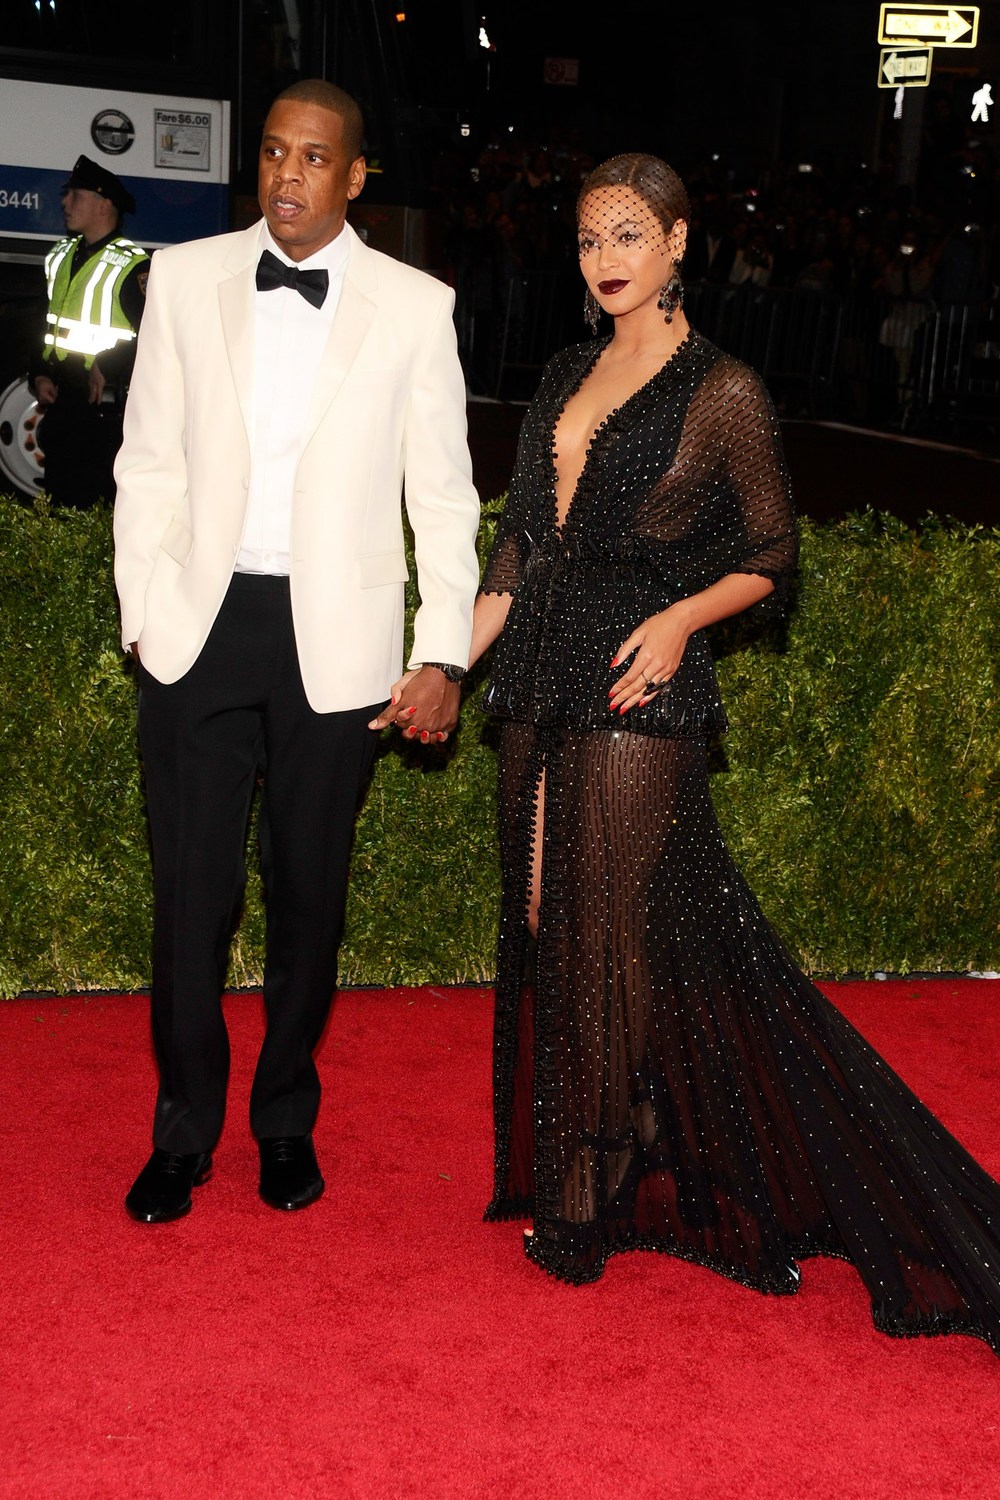 Jay-Z and Beyoncé both wore Givenchy